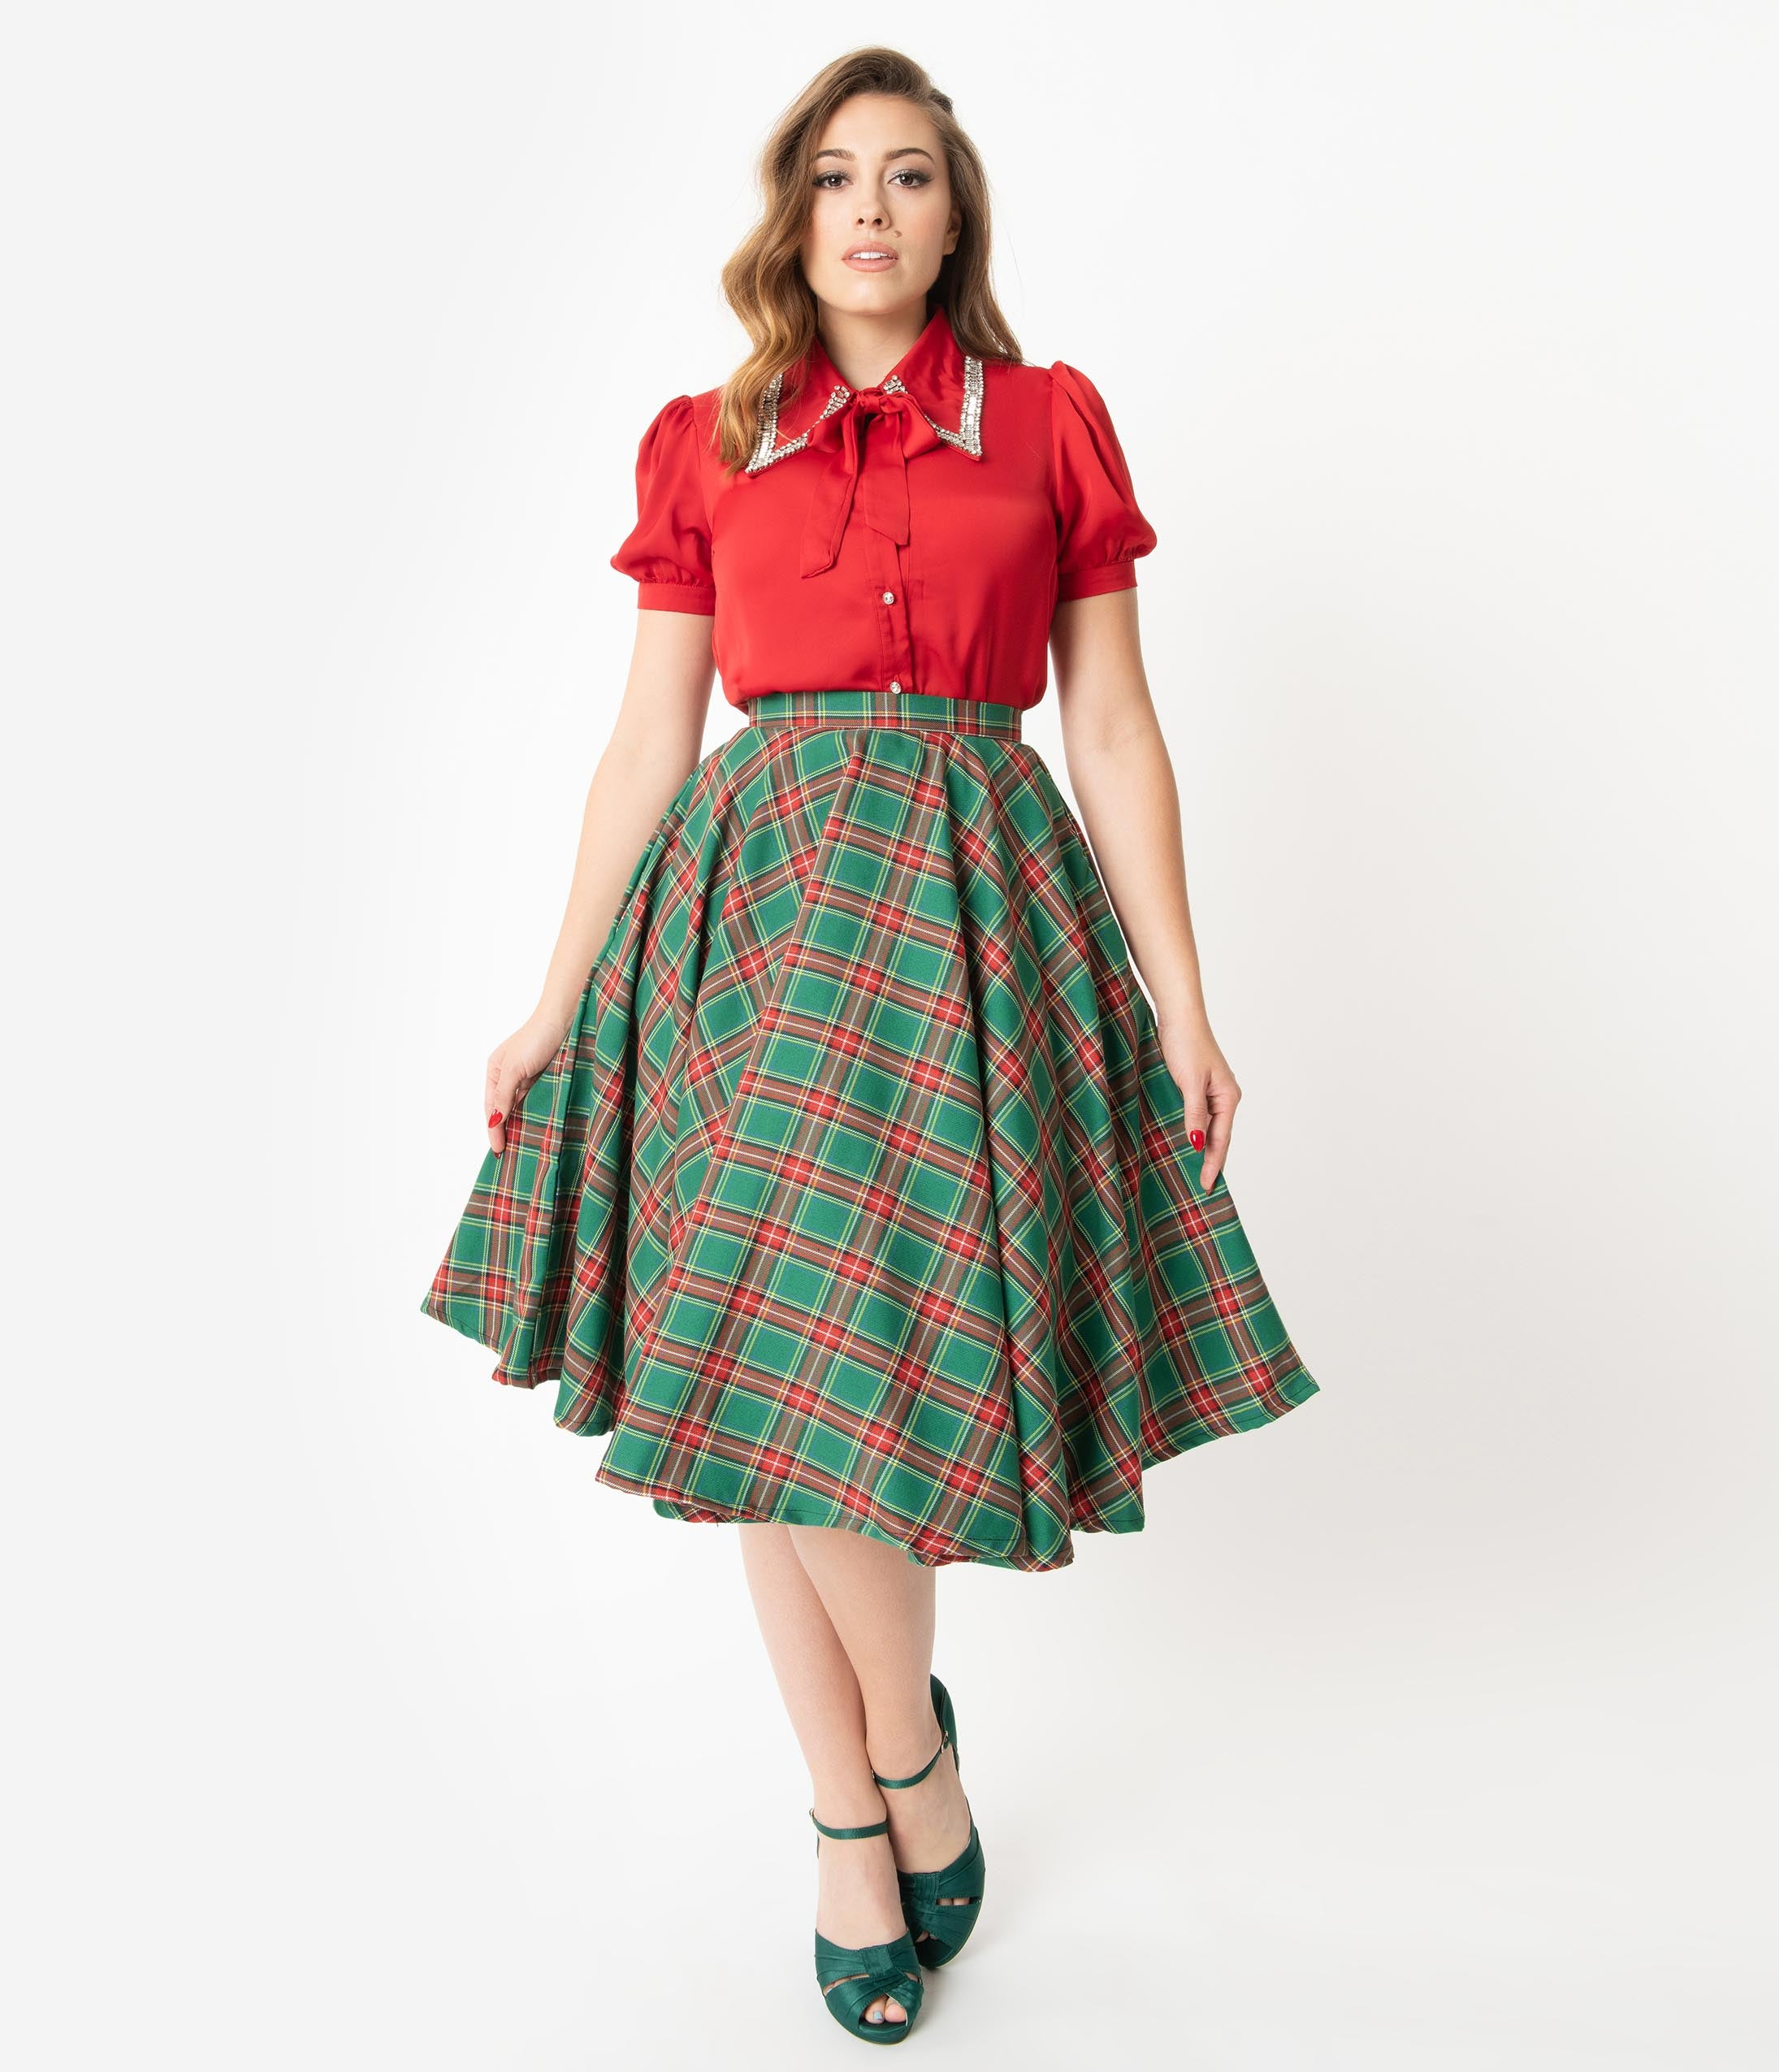 1950s Swing Skirt, Poodle Skirt, Pencil Skirts 1950S Style Red  Green Tartan Swing Skirt $58.00 AT vintagedancer.com